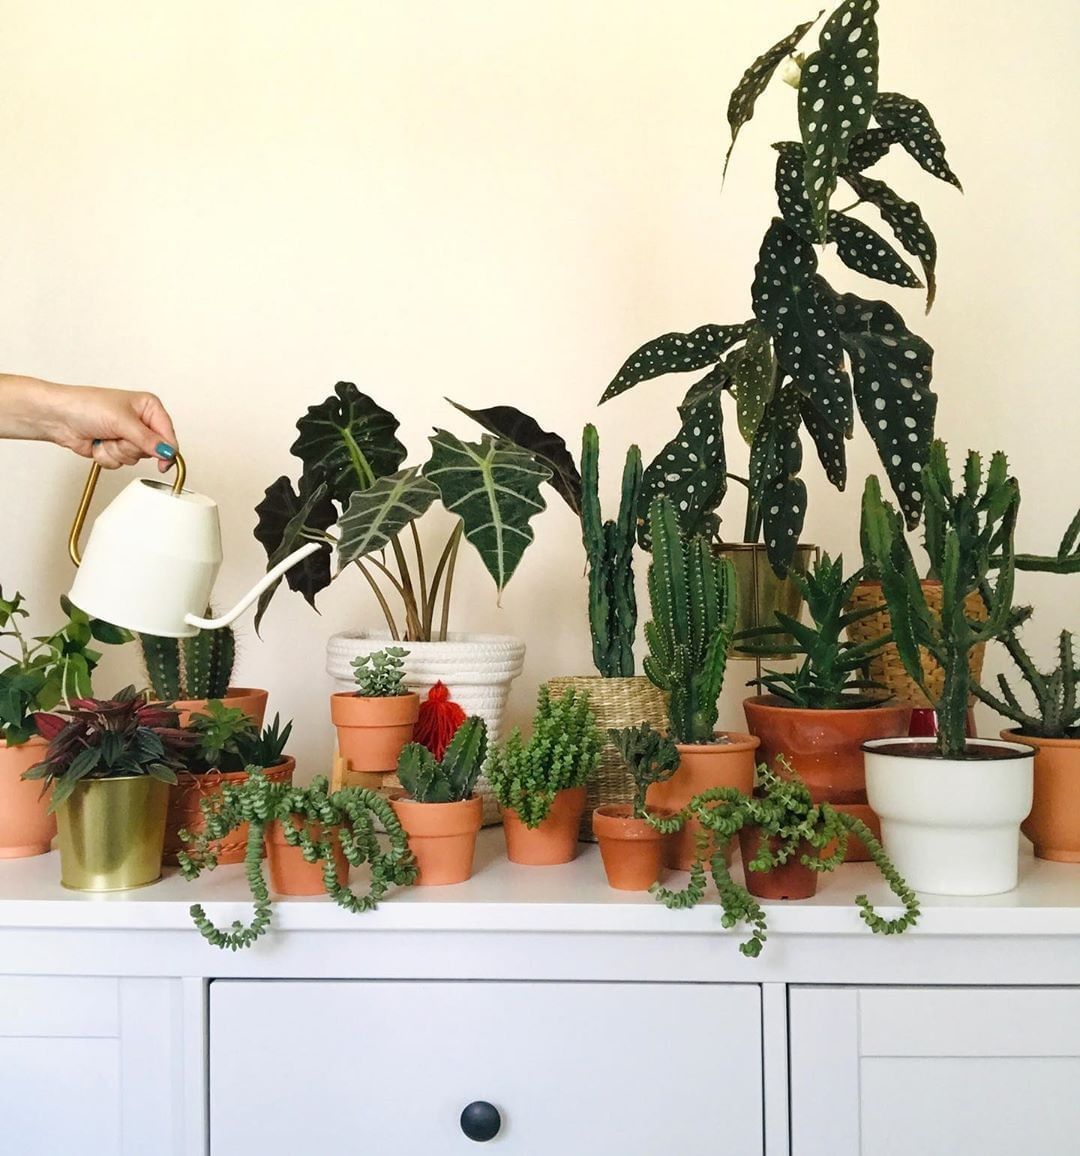 House Plants For Shady Rooms: 2020 的 40+ Beautiful Plants Ideas For Home Decor 主题